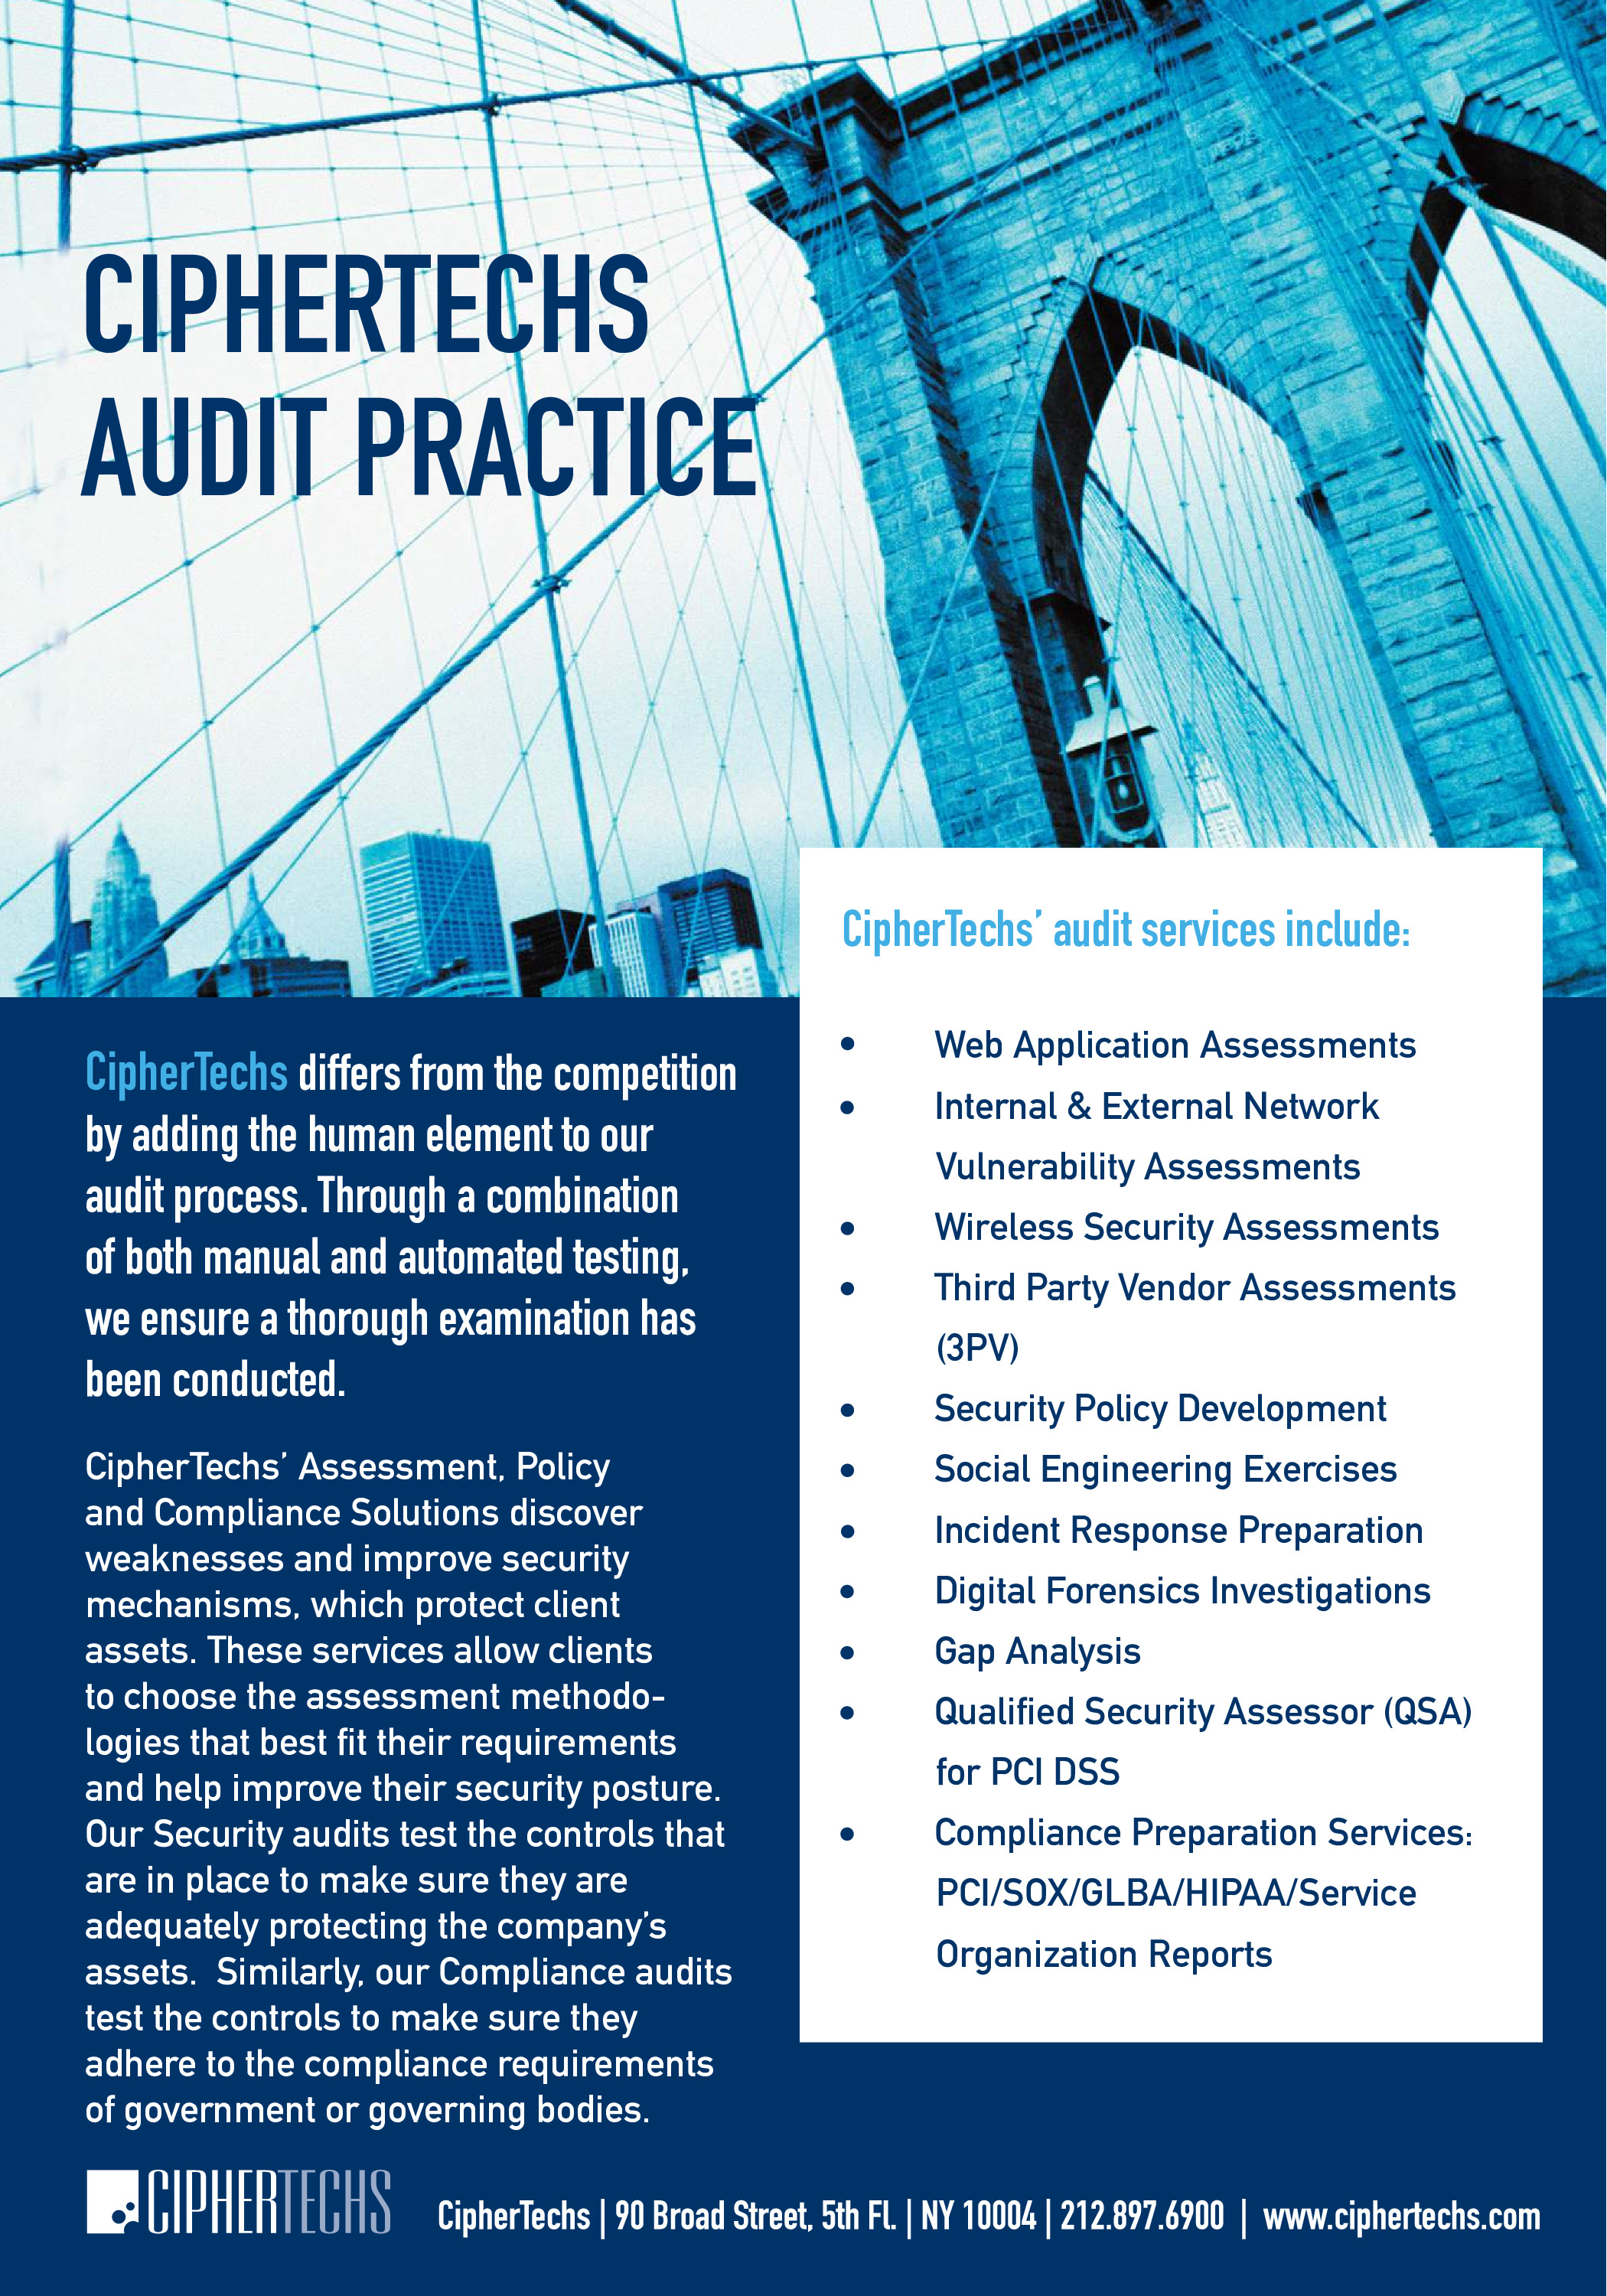 Policy & Compliance Showcase - New York, United States of America